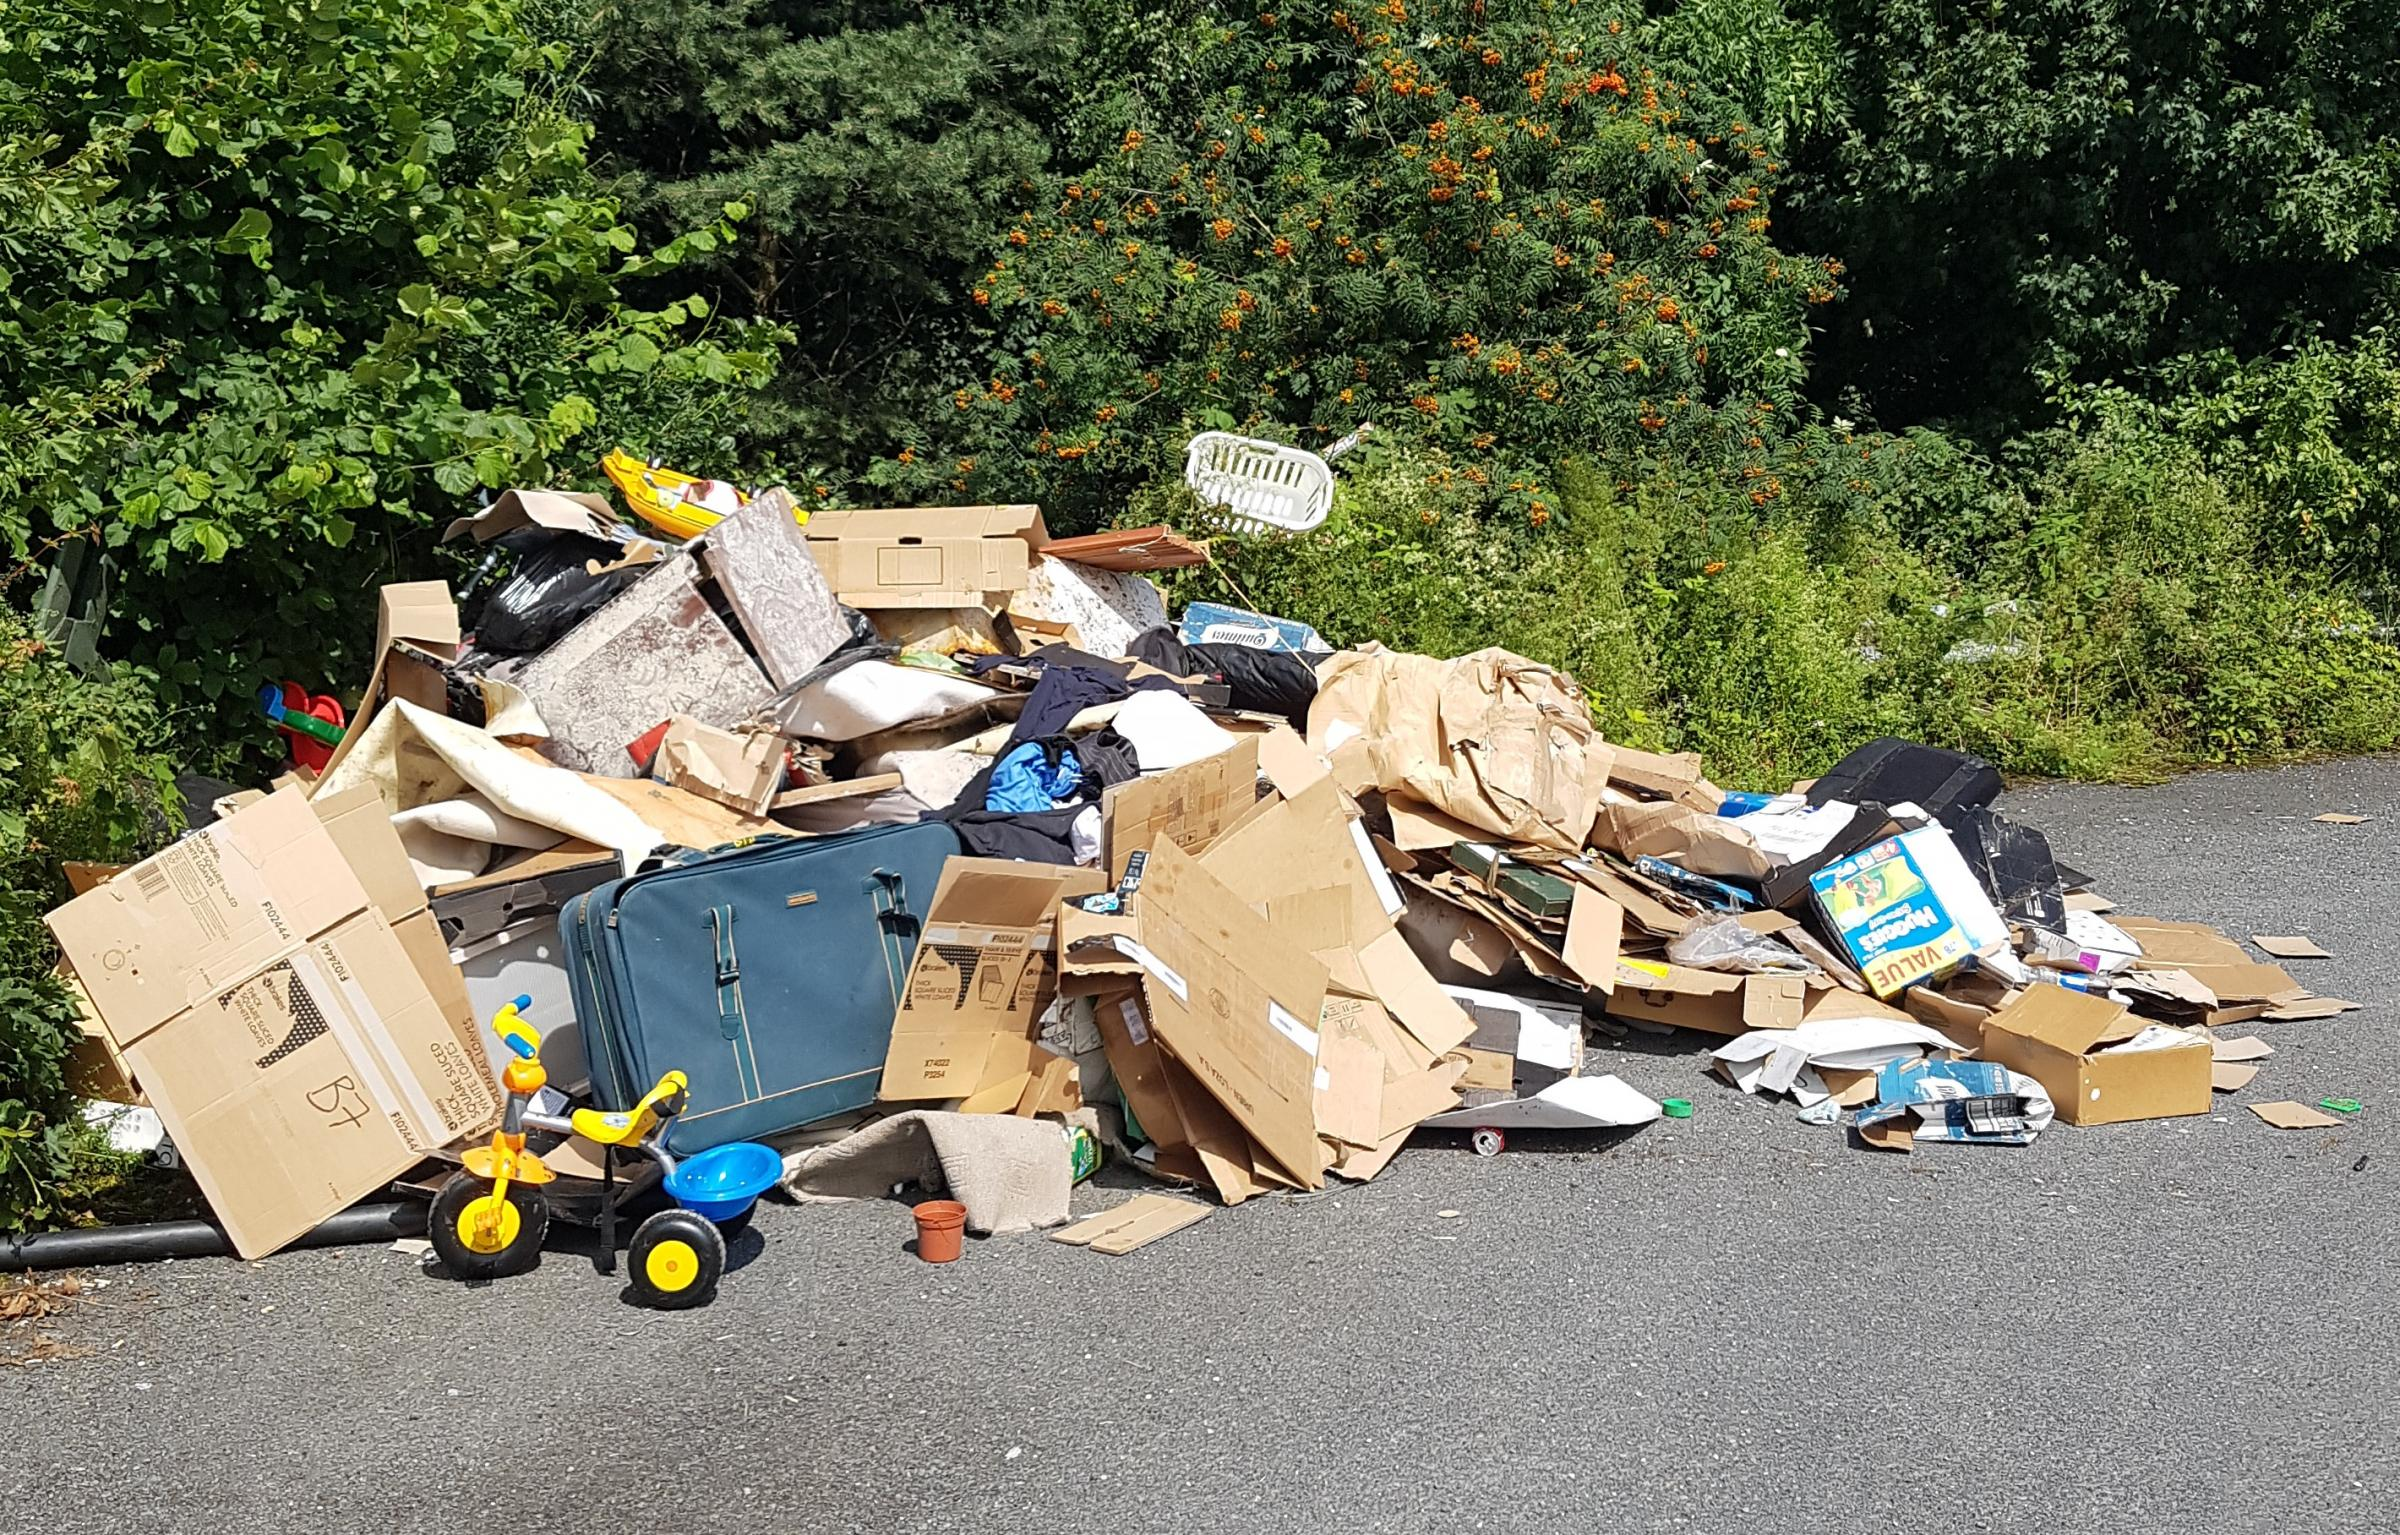 Fly-tipping couple advertised waste removals on Facebook